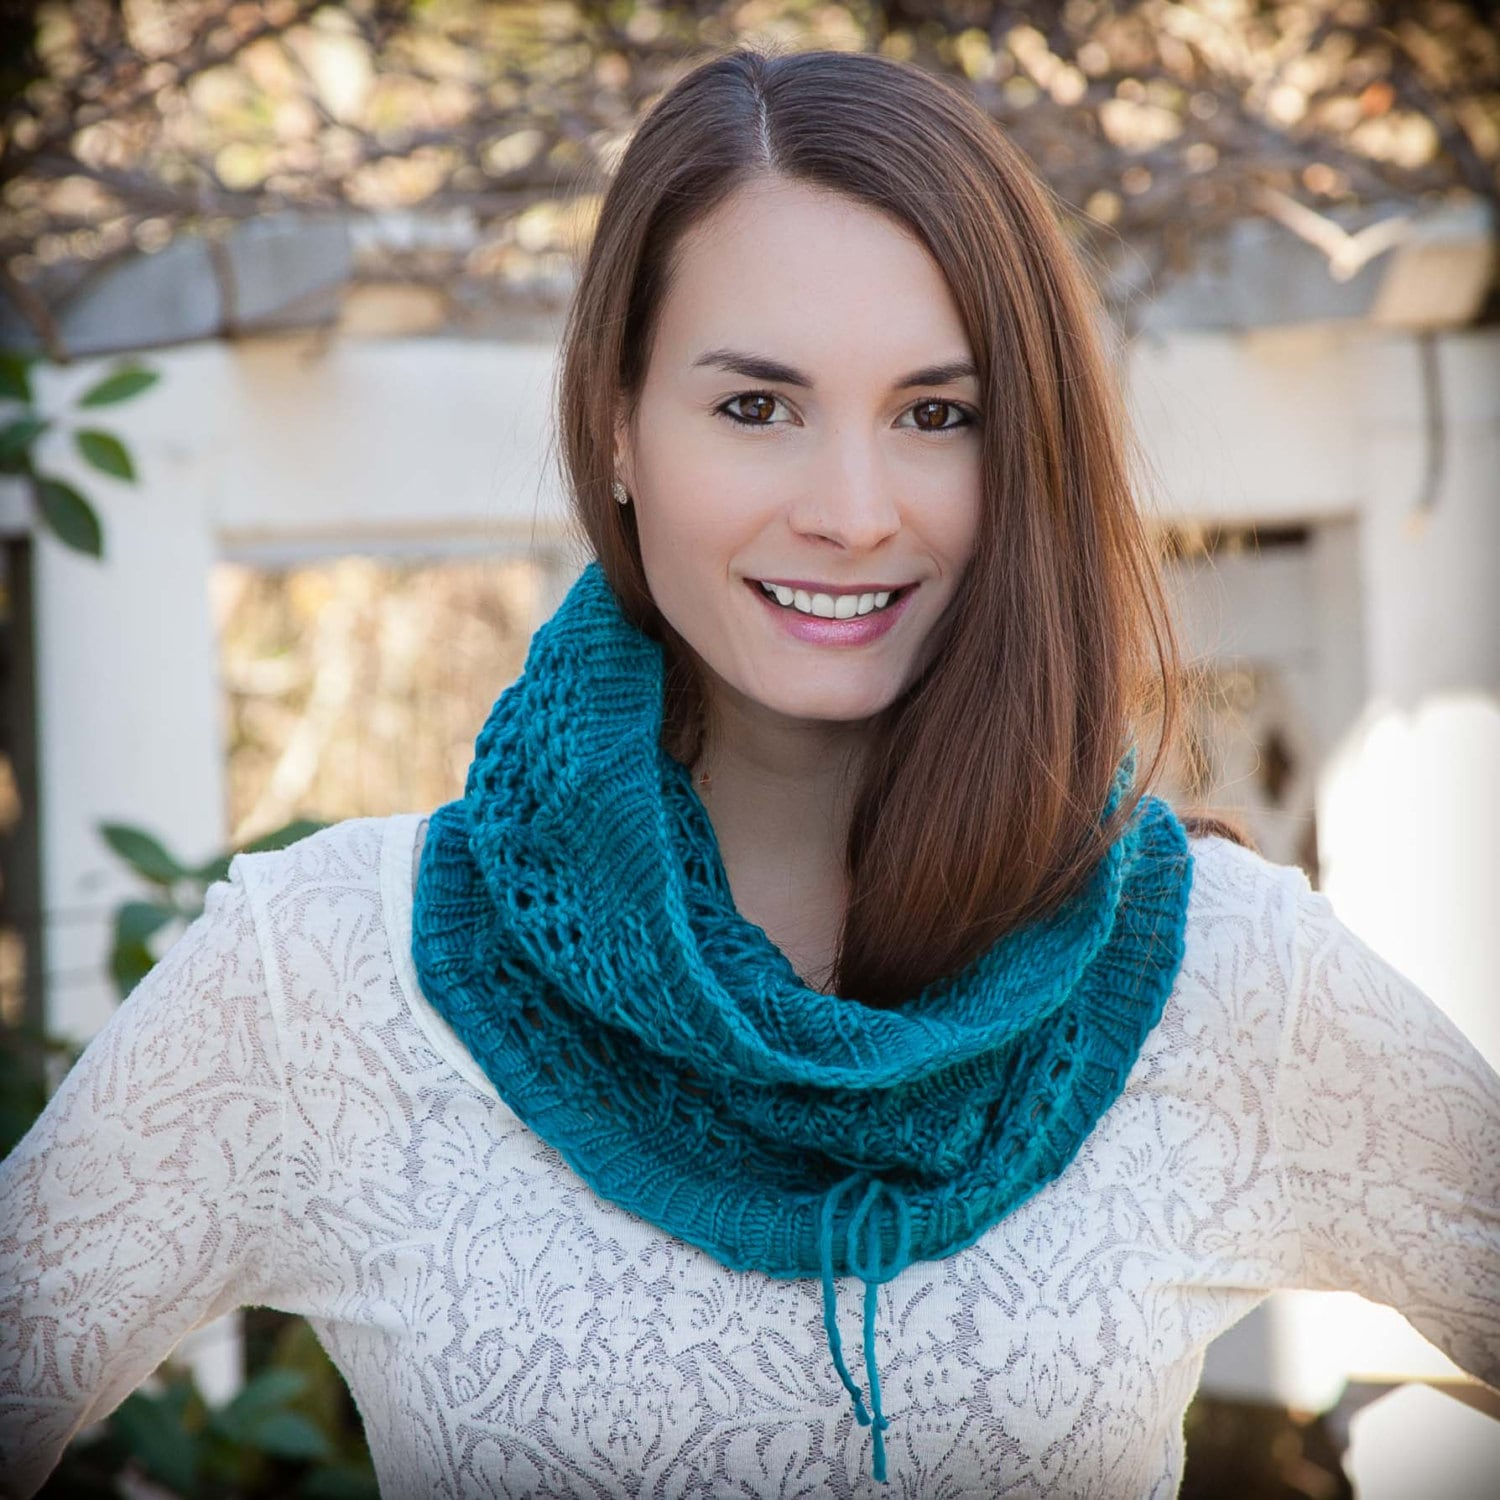 Loom Knit Snood Cowl PATTERN. Lace Snood, Infinity Scarf, Easy lace loom knit...